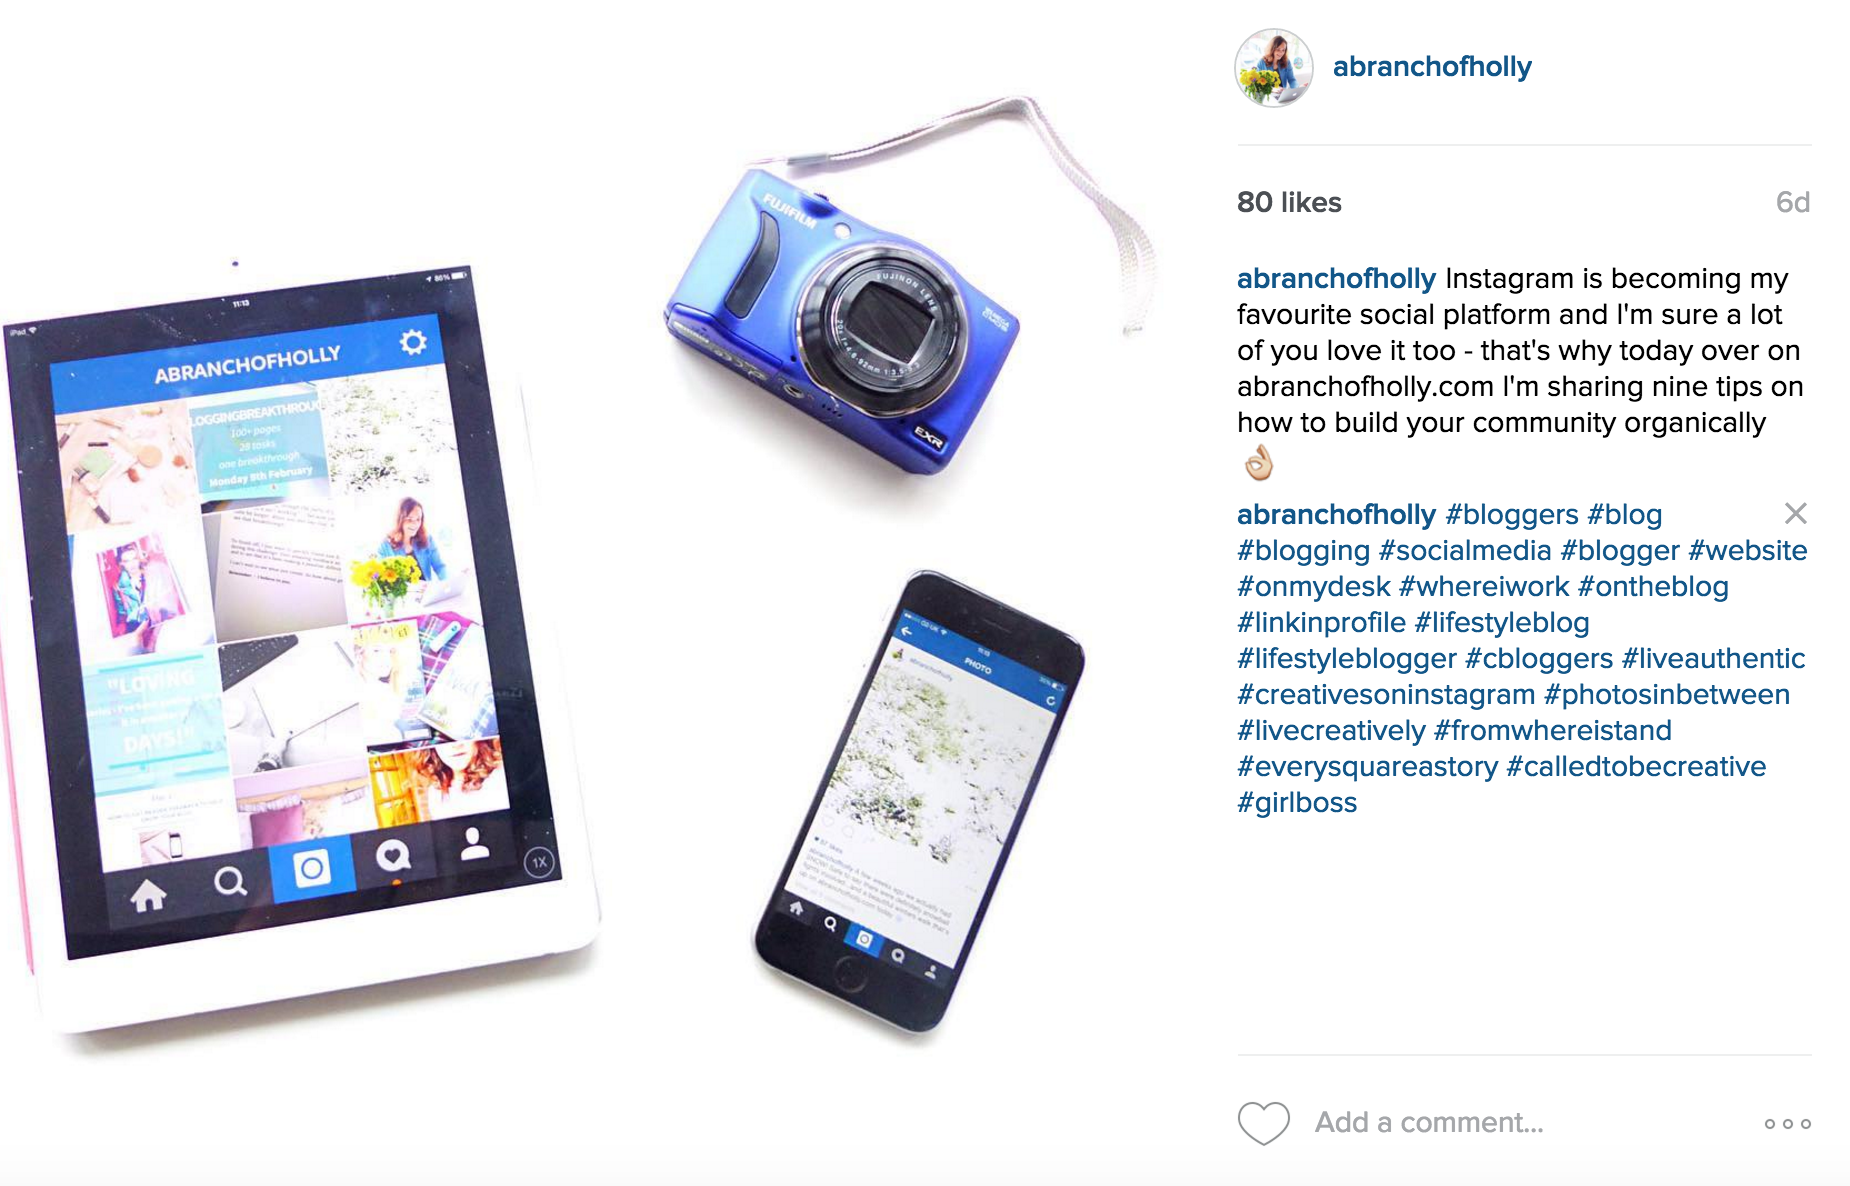 How to Use Hashtags on Instagram to Get Big Results